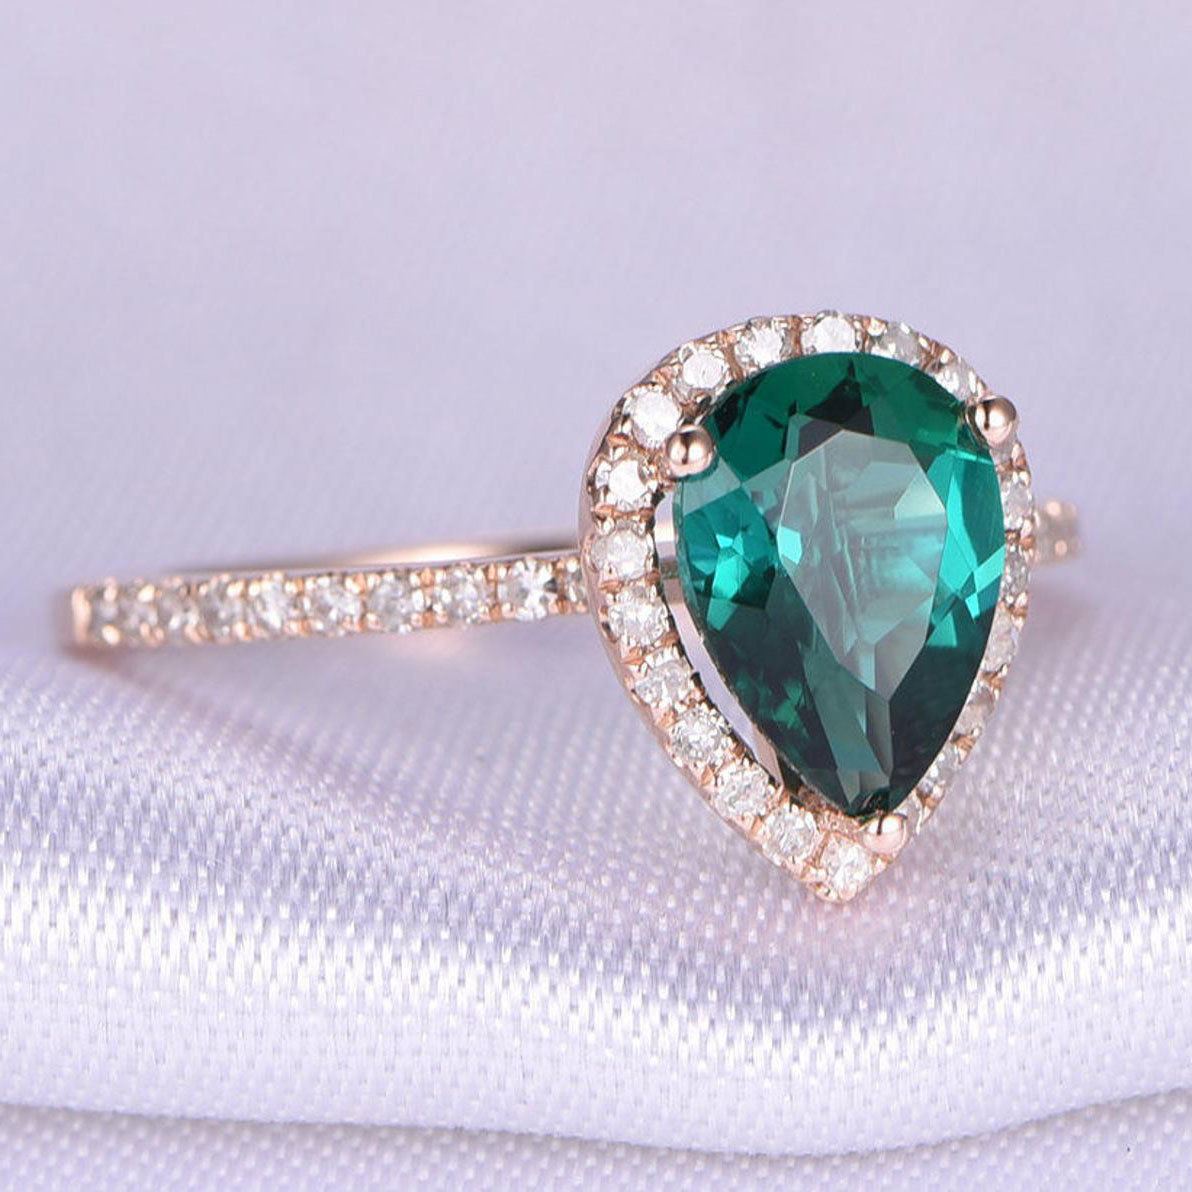 Mile Gem Pear-Shaped Emerald Engagement Ring in 14k Rose Gold from Etsy photo